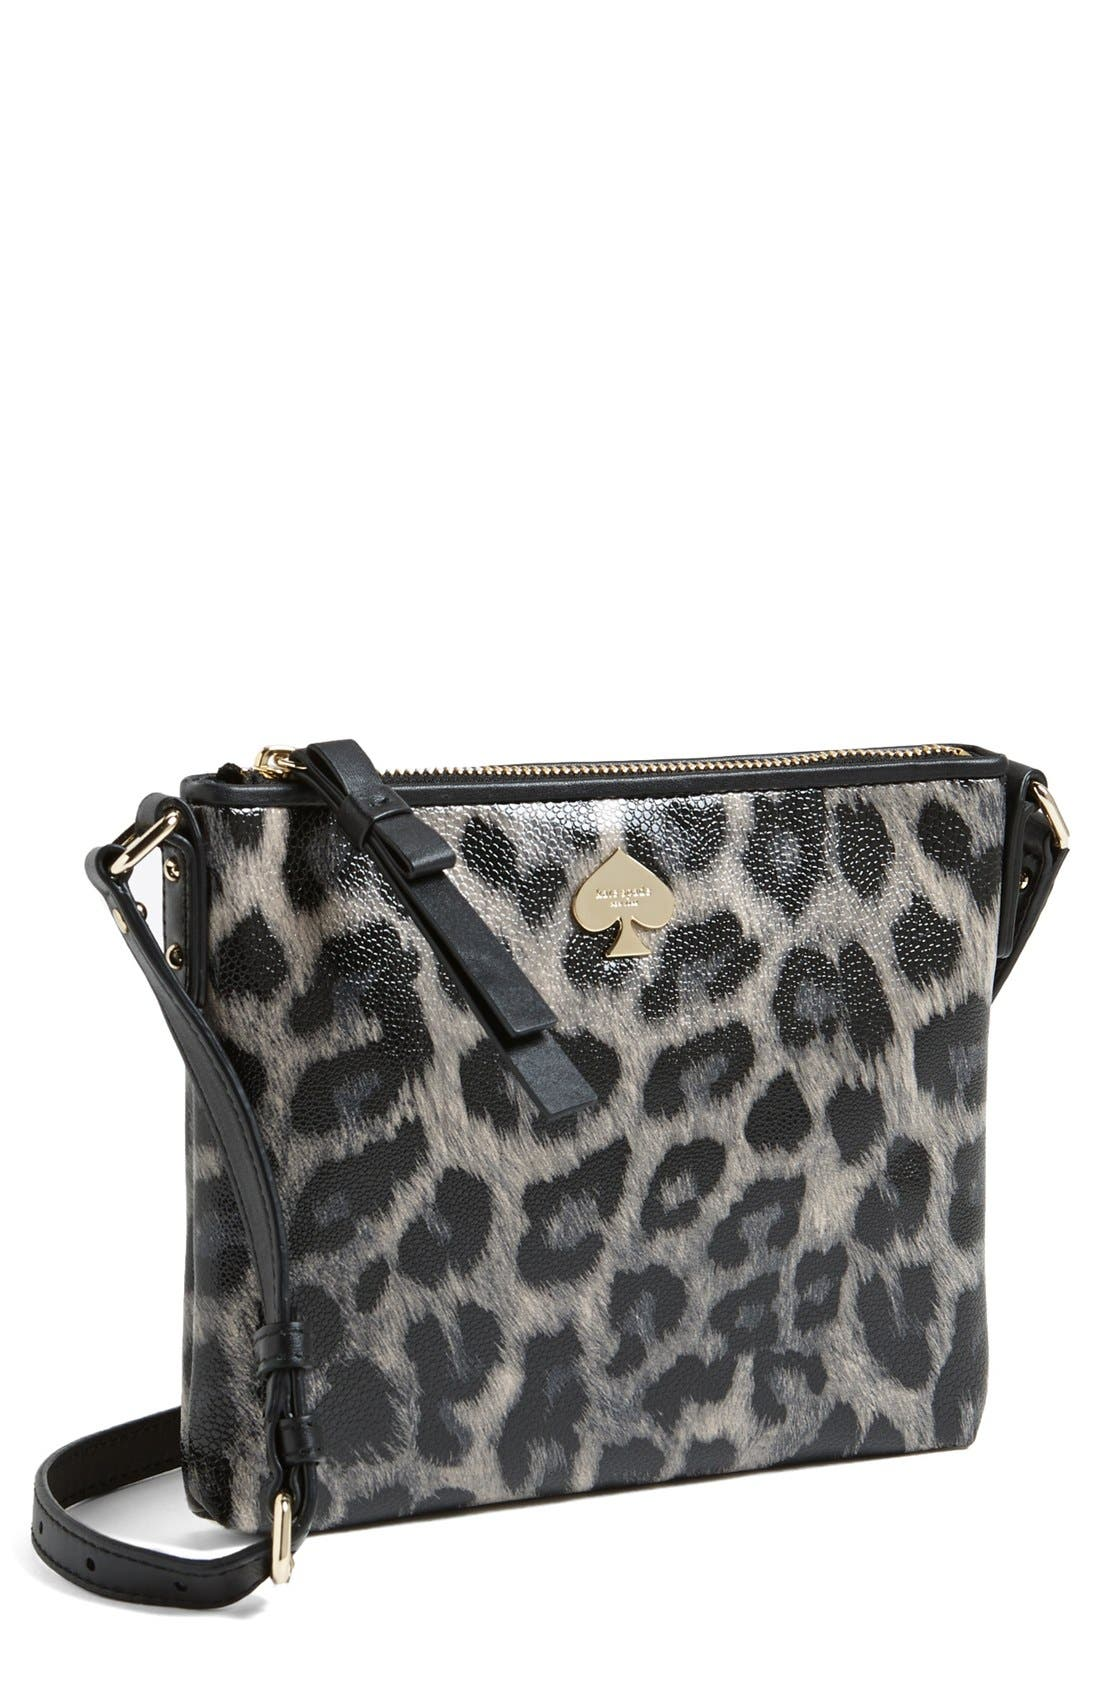 Main Image - kate spade new york 'leroy street - animal print tenley' crossbody bag